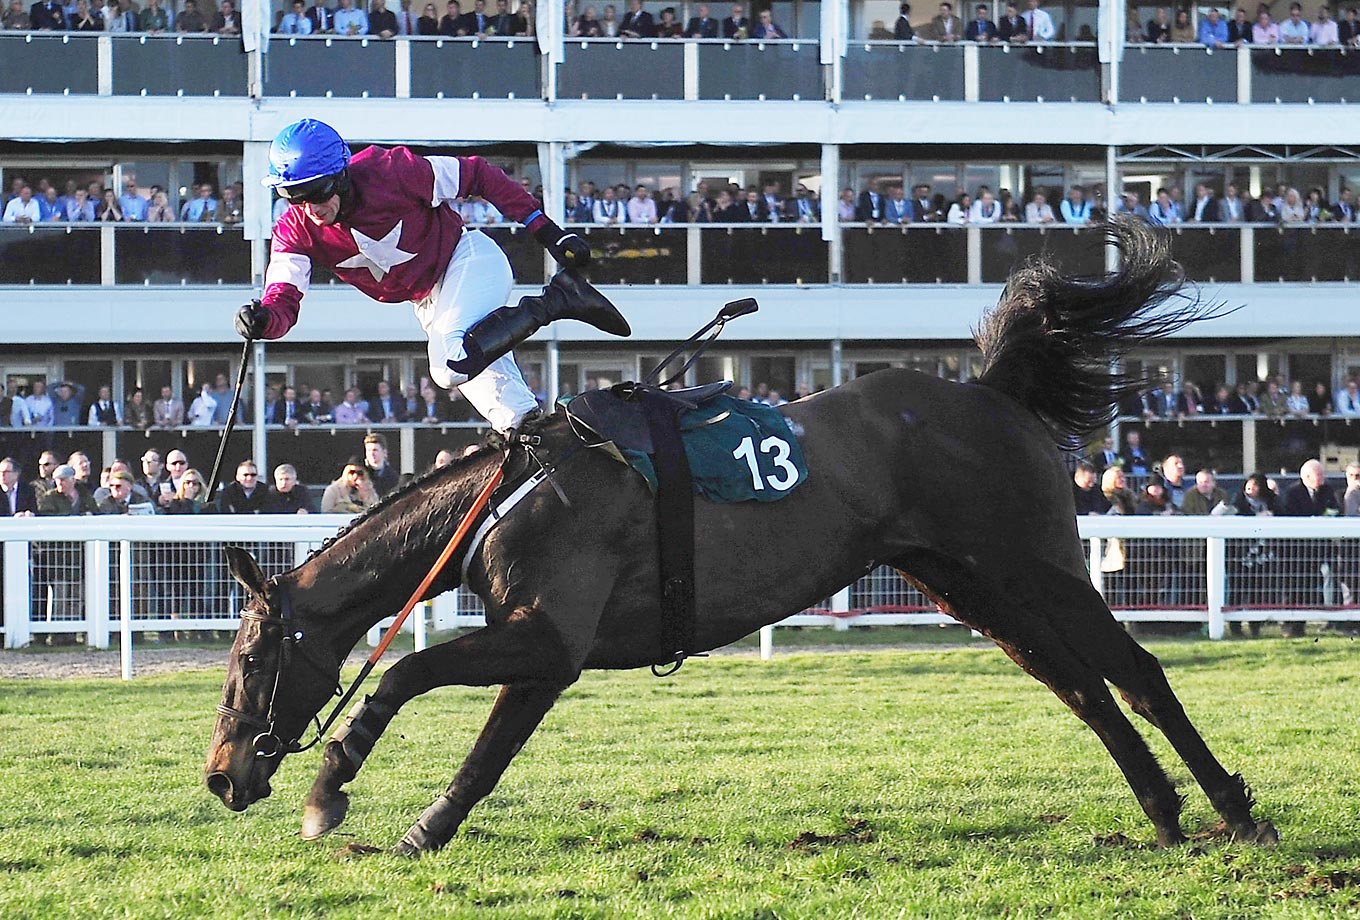 Jonny King is shot off of Thunder and Roses in The Toby Balding National Hunt Steeple Chase in Cheltenham, England.